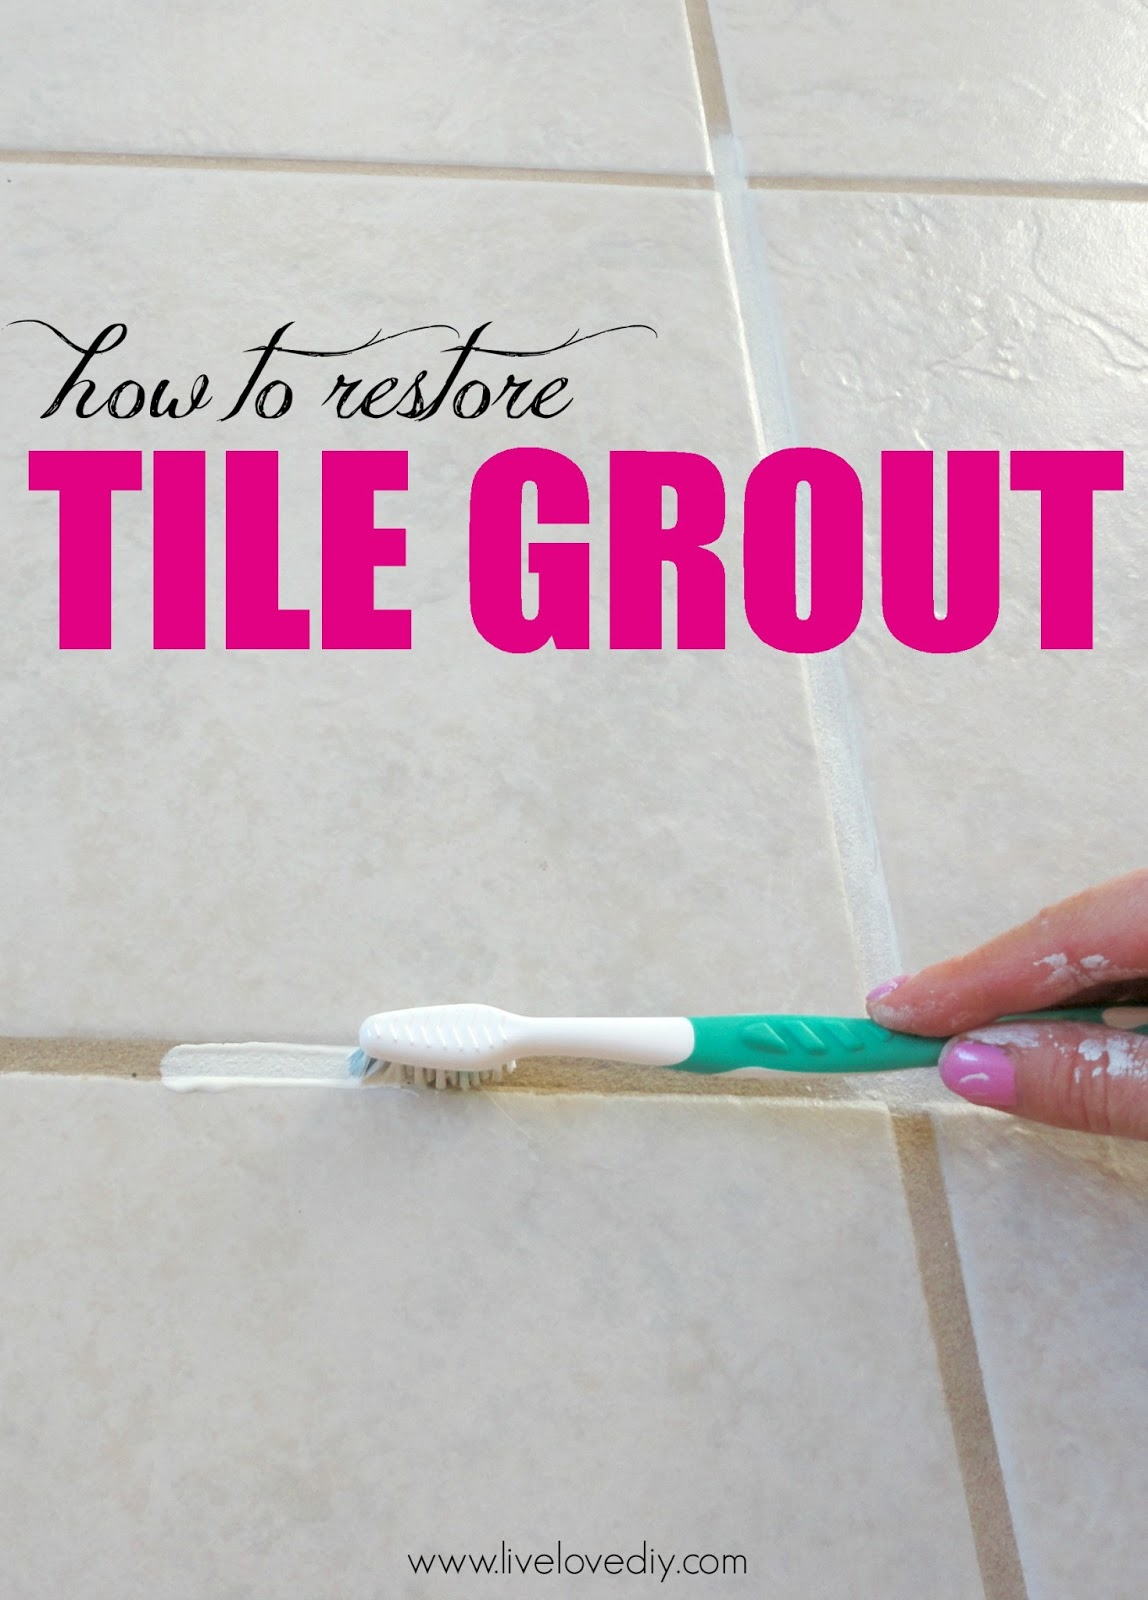 Livelovediy how to restore dirty tile grout how to restore dirty tile grout this is so great dailygadgetfo Gallery